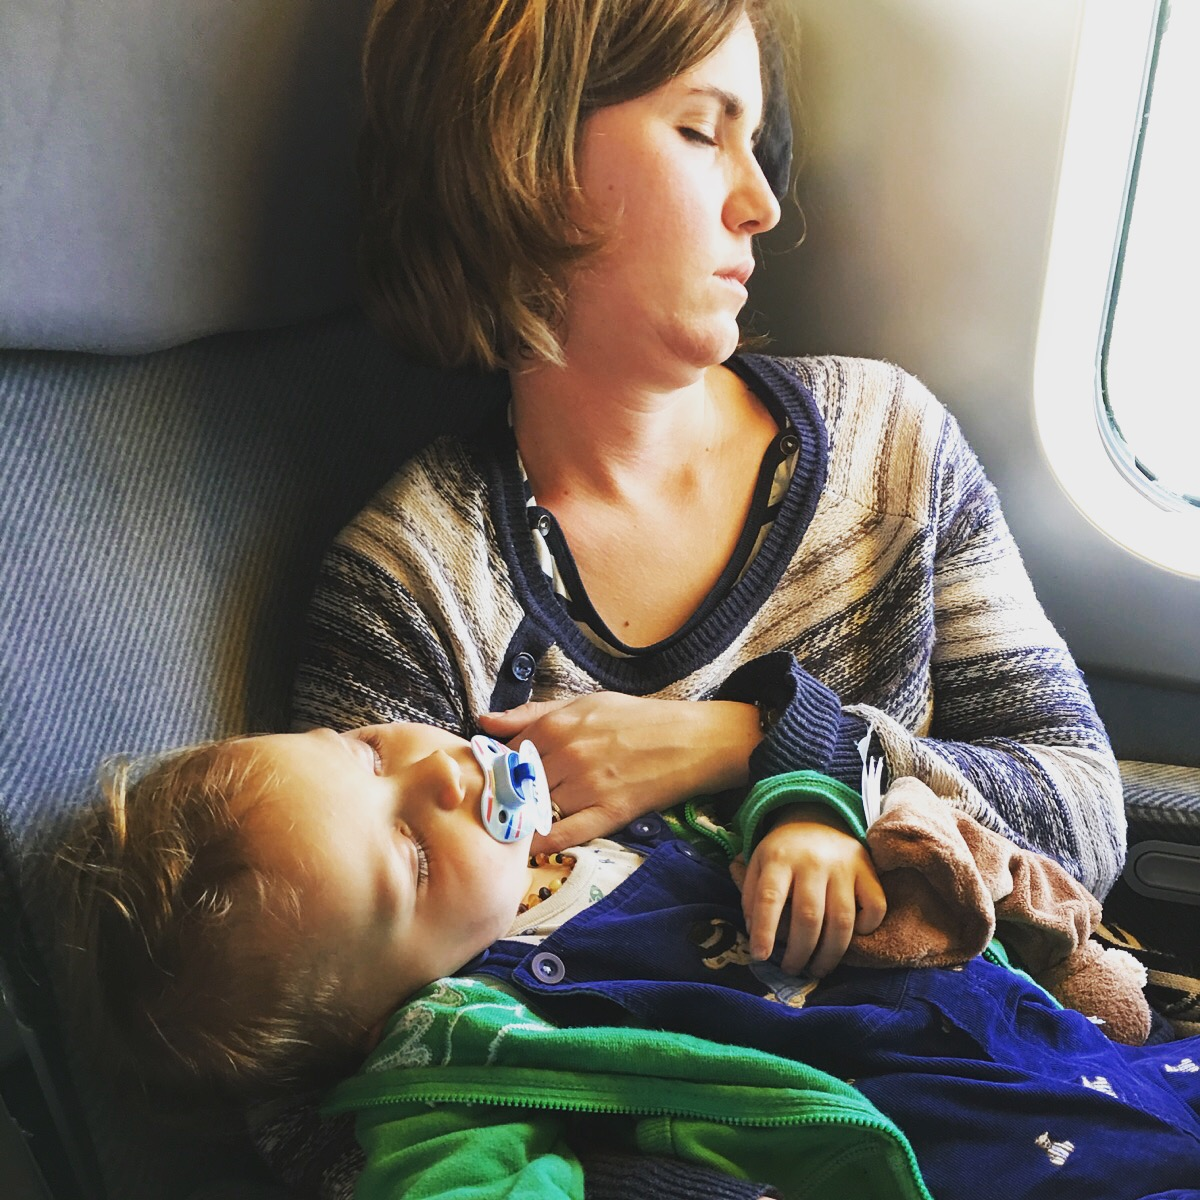 Mommy and baby passed out on the train to the Alps after the plane. He is holding onto his new Curious George doudou. Little does he know at this point that Doudou is back home across the Atlantic.